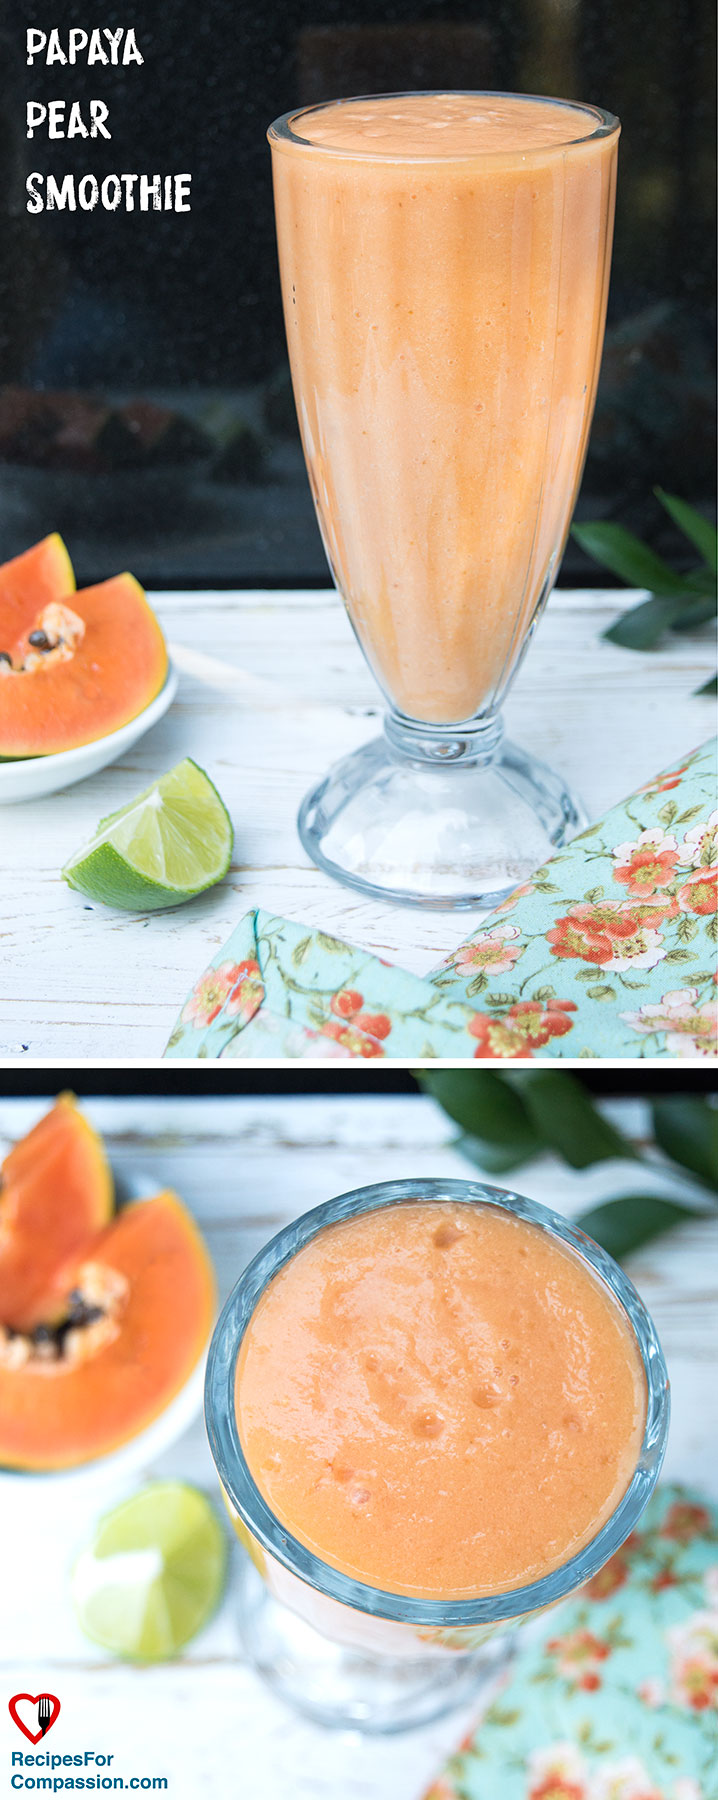 papaya-pear-smoothie-pinterest